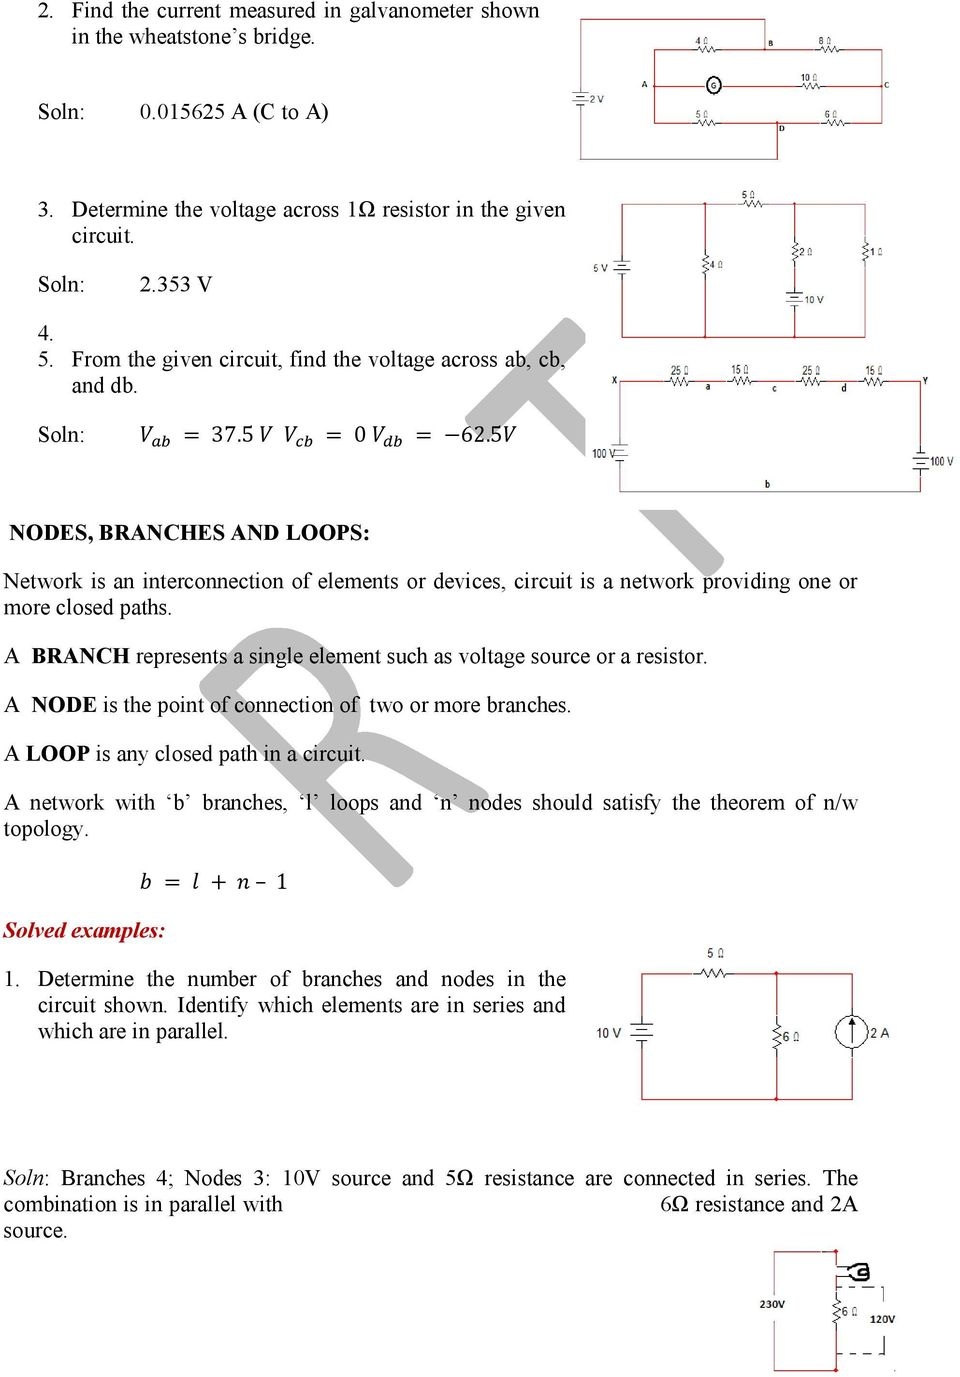 Basic Electrical Engineering Pdf Resistors How To Measure Current Practically In A Circuit 5 Nodes Branches And Loops Network Is An Interconnection Of Elements Or Devices